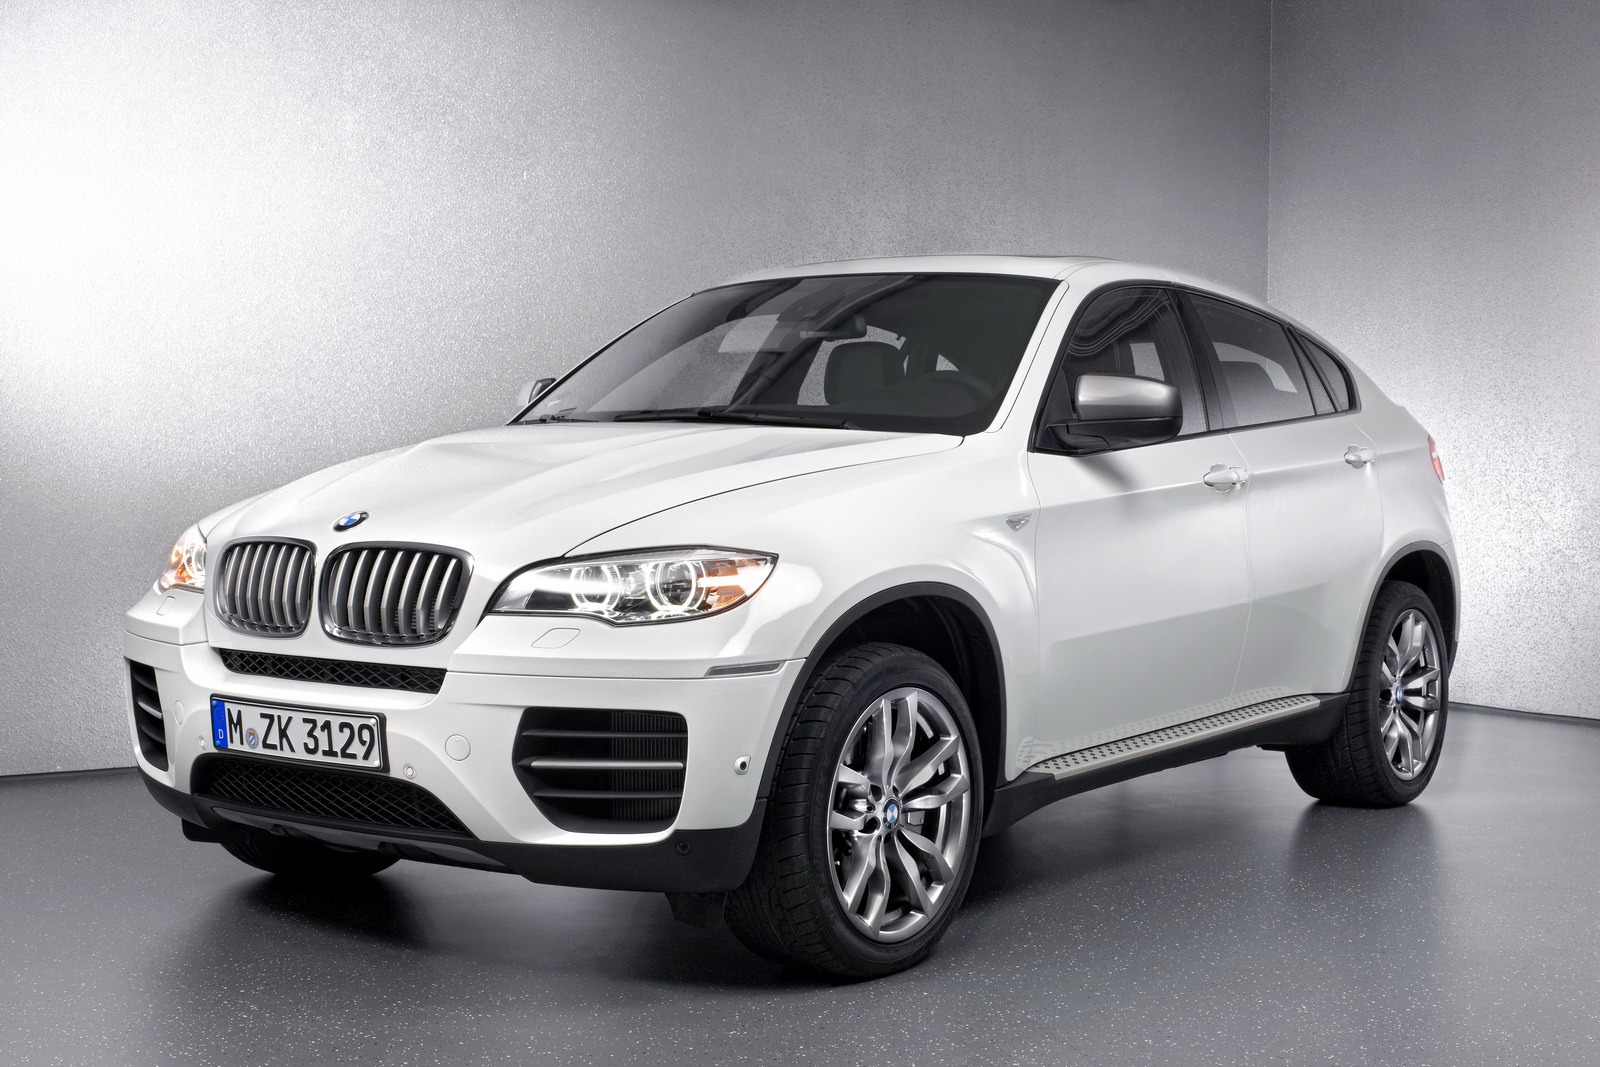 bmw x6 m50d super diesel sav unveiled autoevolution. Black Bedroom Furniture Sets. Home Design Ideas